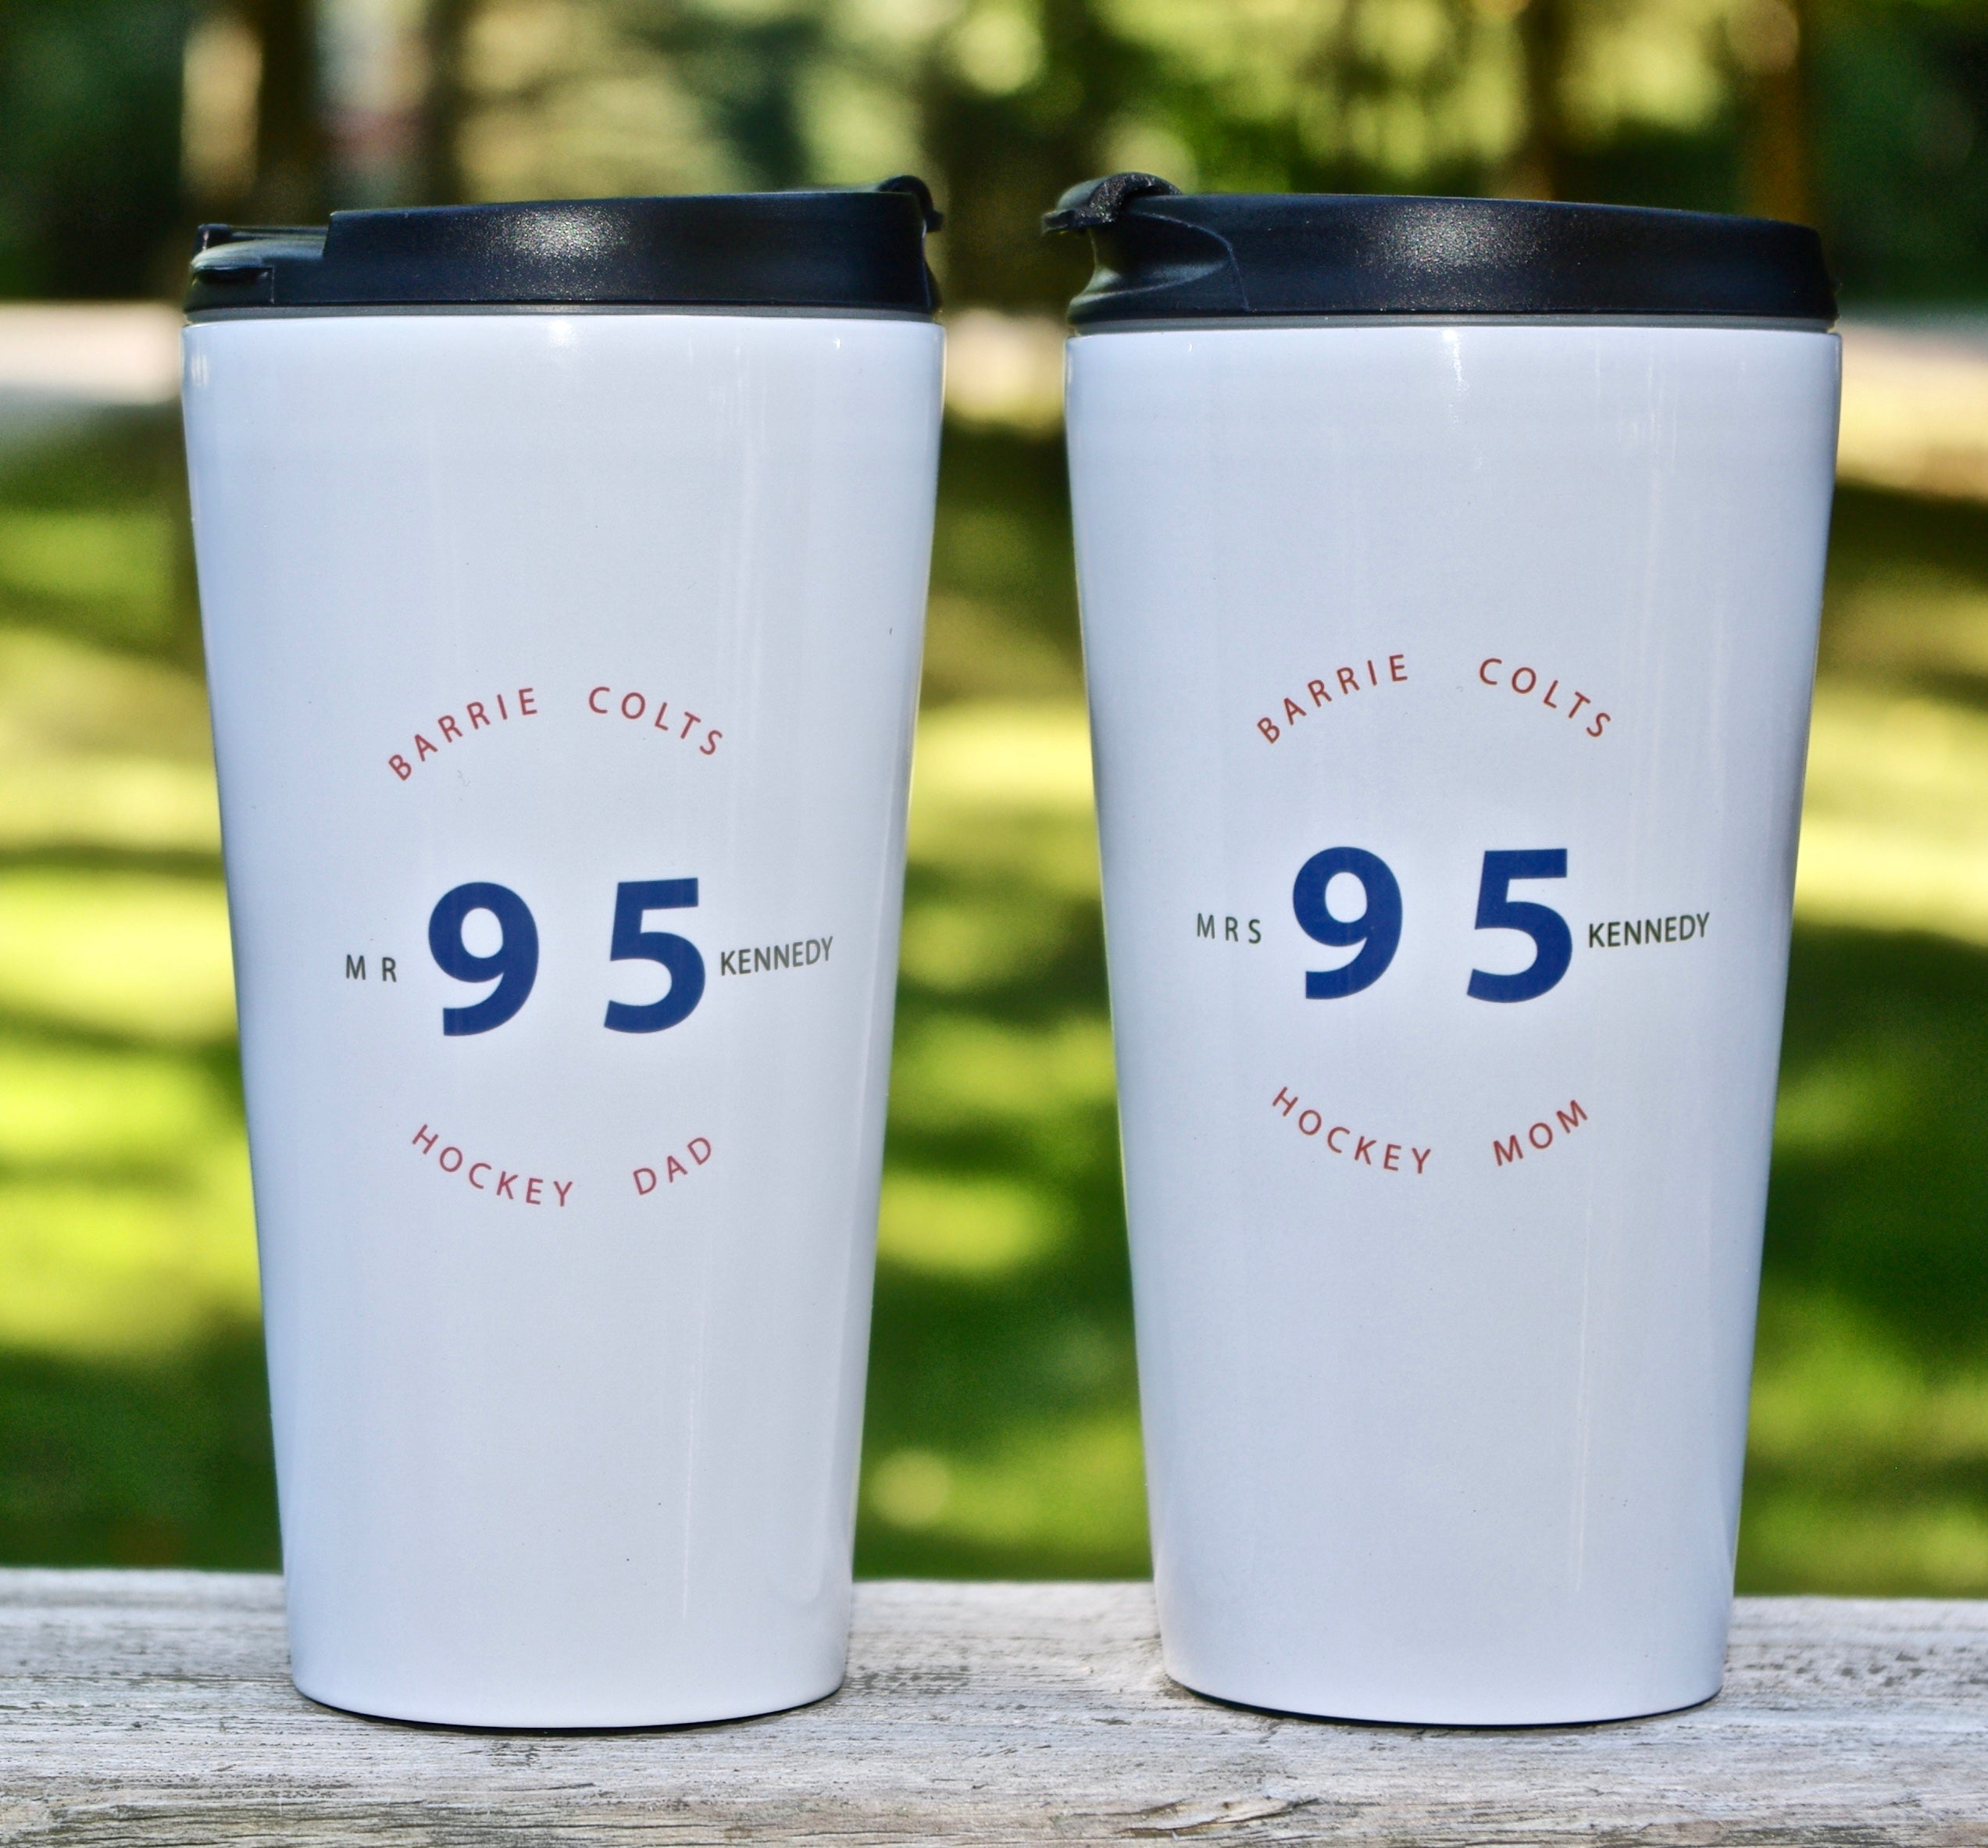 hockey dad merchandise hockey dad travel mug hockey dad merch hockey dad travel mug canada hockey mom travel mug canada